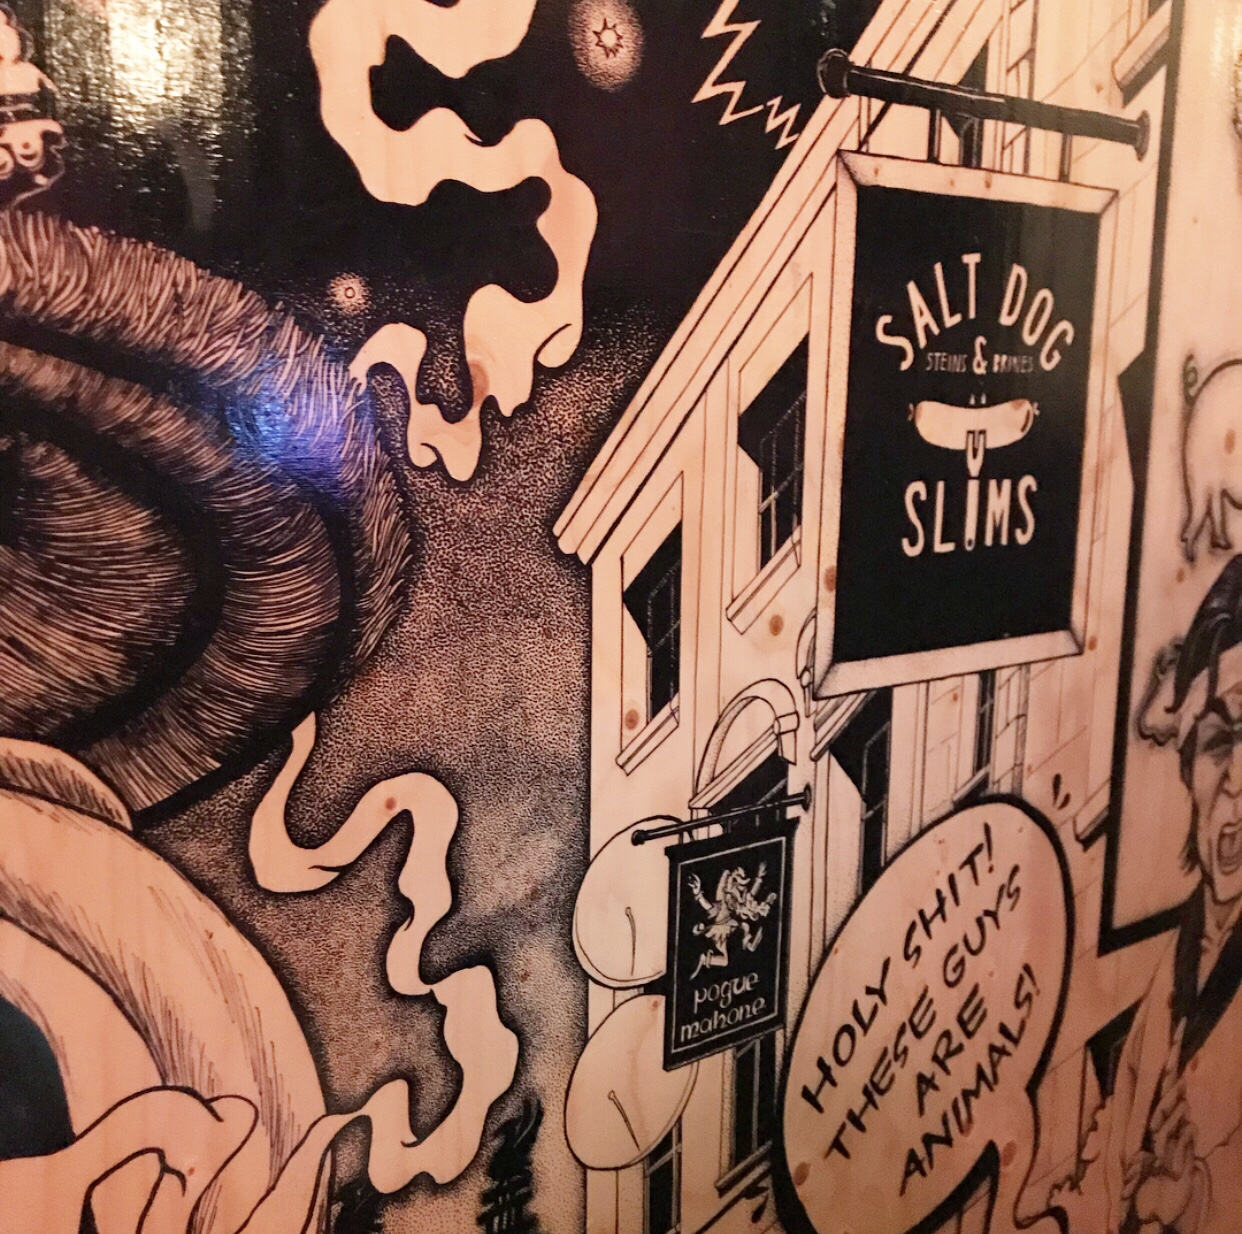 Salt Dog Slims Express Liverpool Review